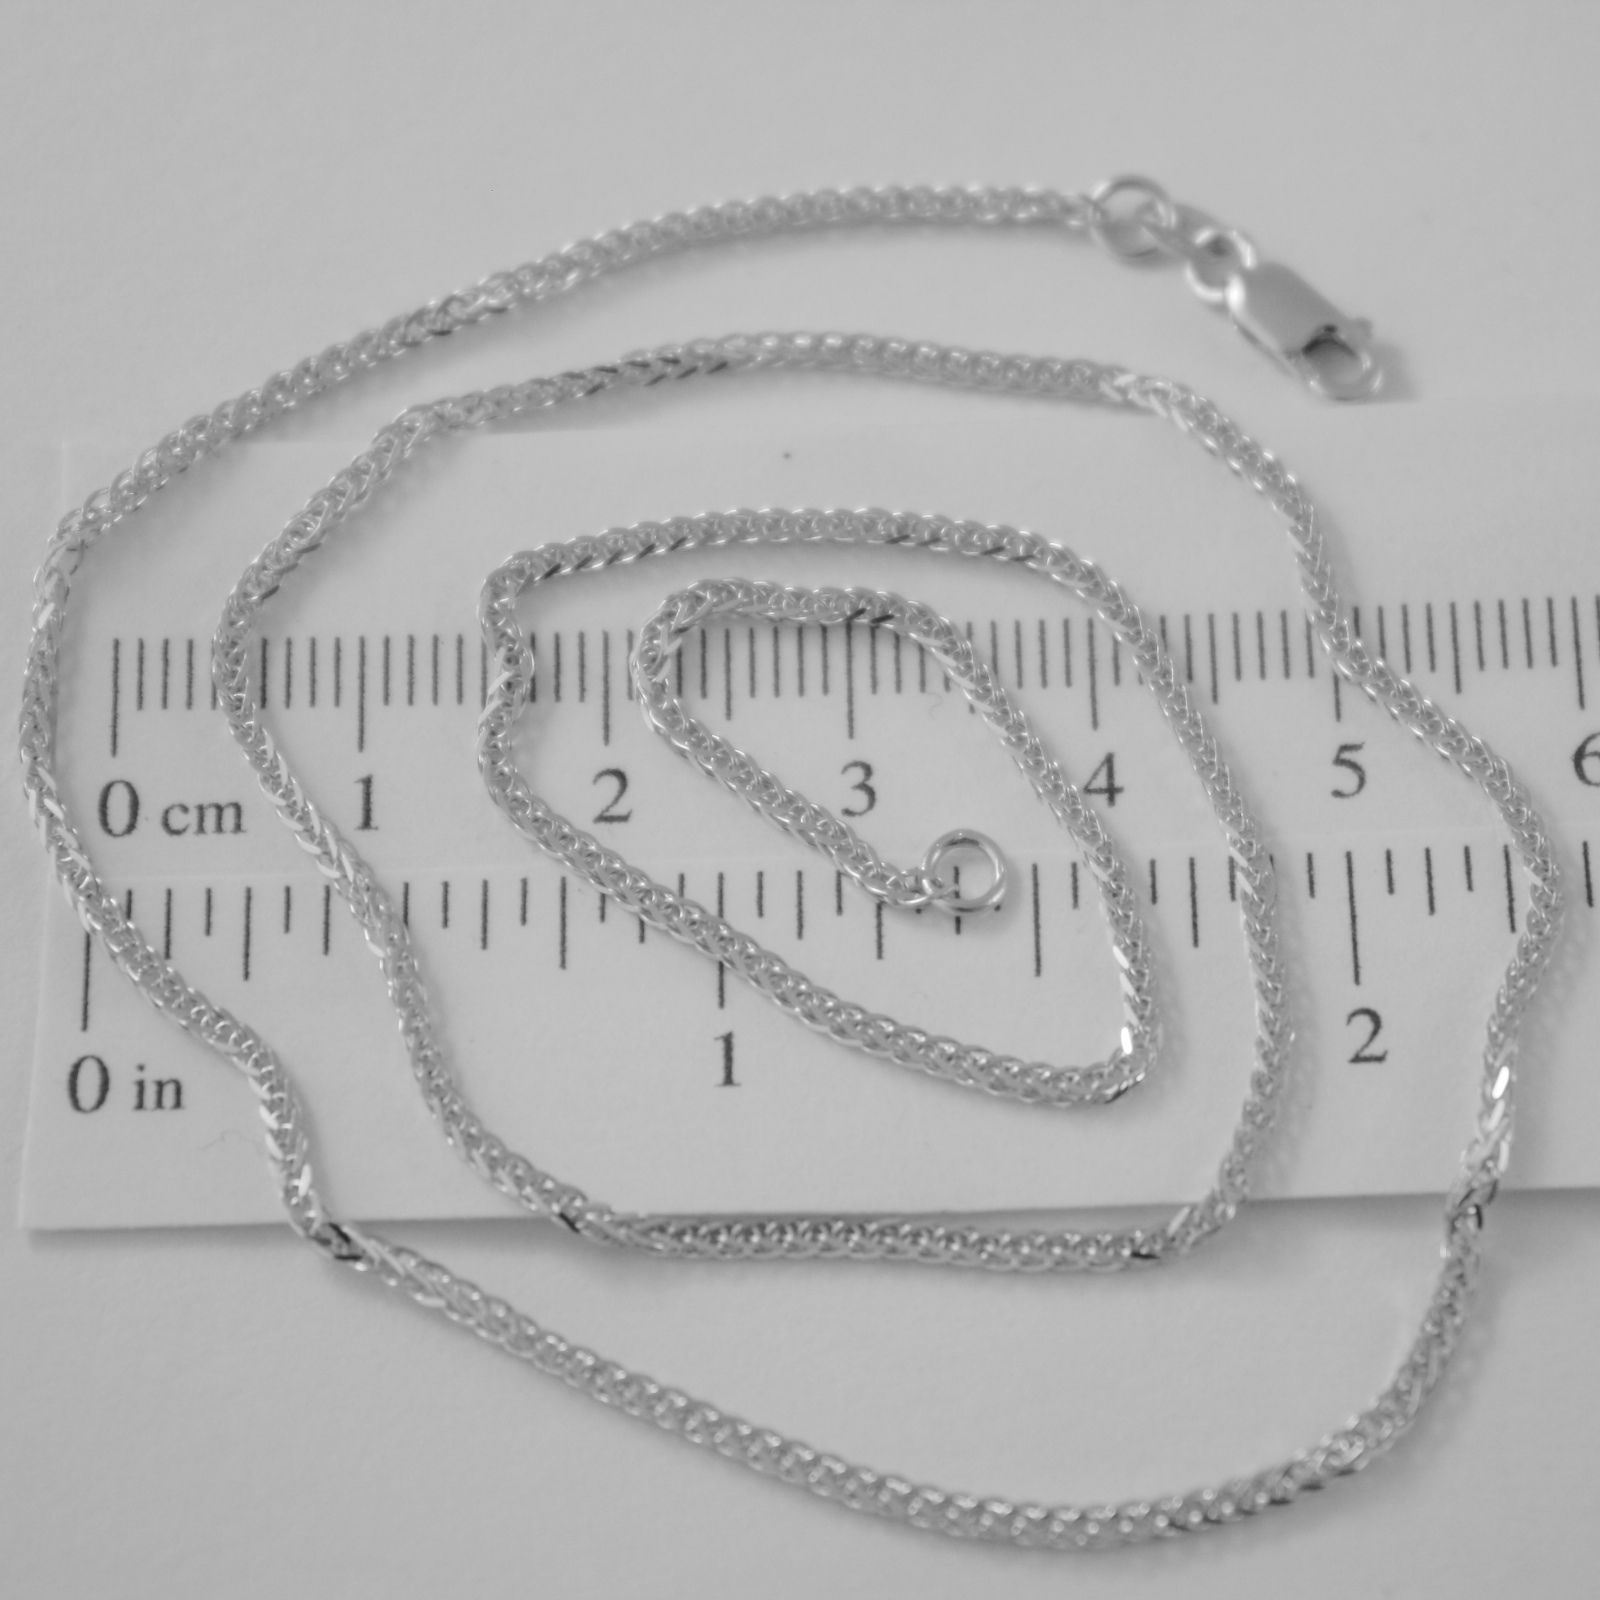 SOLID 18K WHITE GOLD CHAIN NECKLACE 2MM EAR SQUARE MESH 17.71 IN, MADE IN ITALY